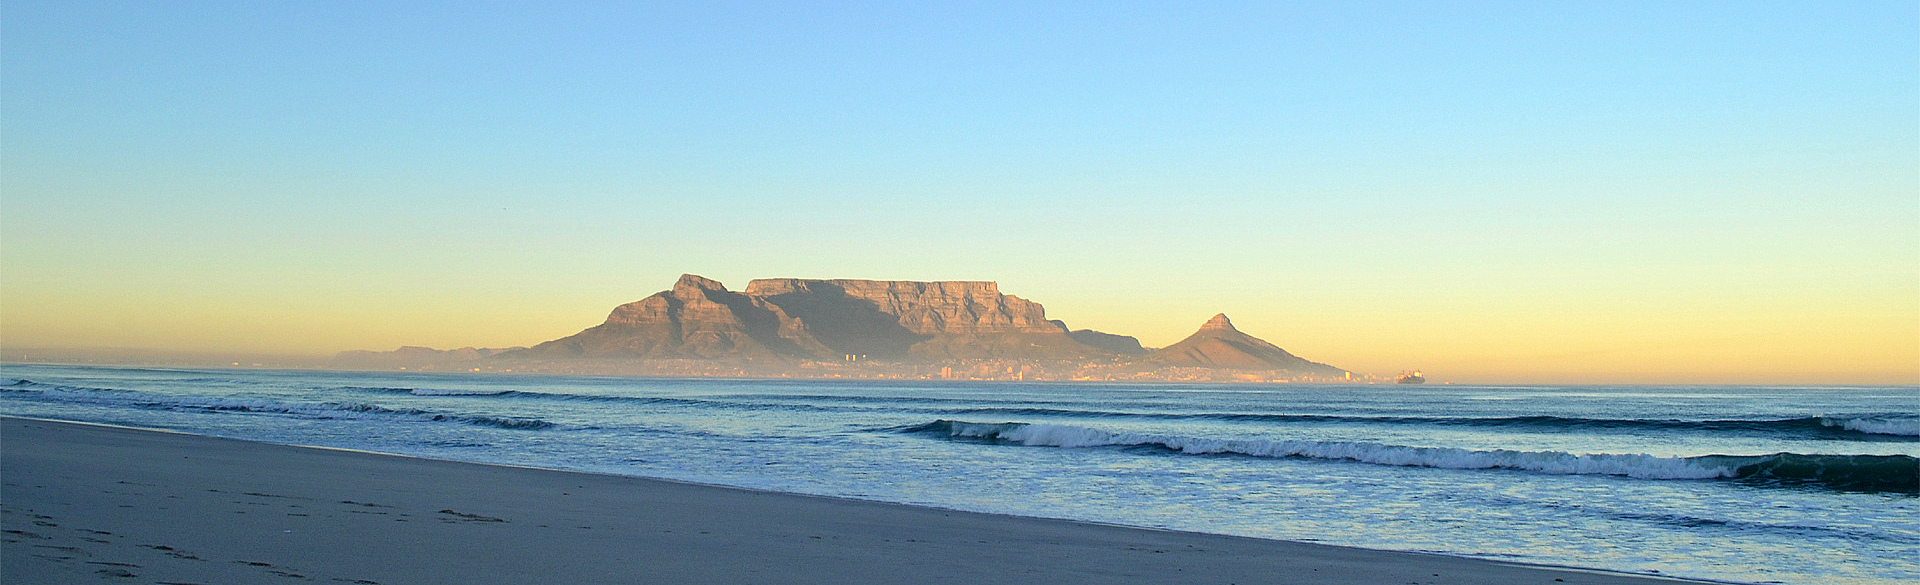 Table Mountain from Bloubergstrand by John Berry